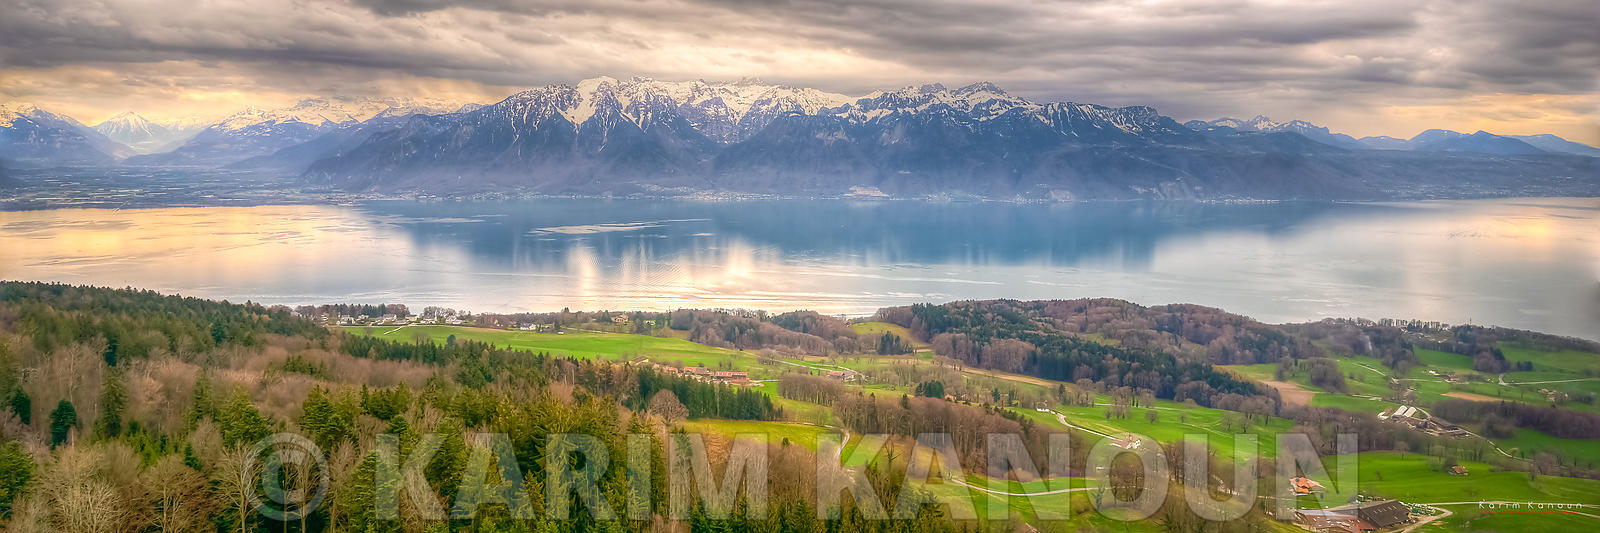 Panorama - Green fields with forests, Geneva Lake and the Alps